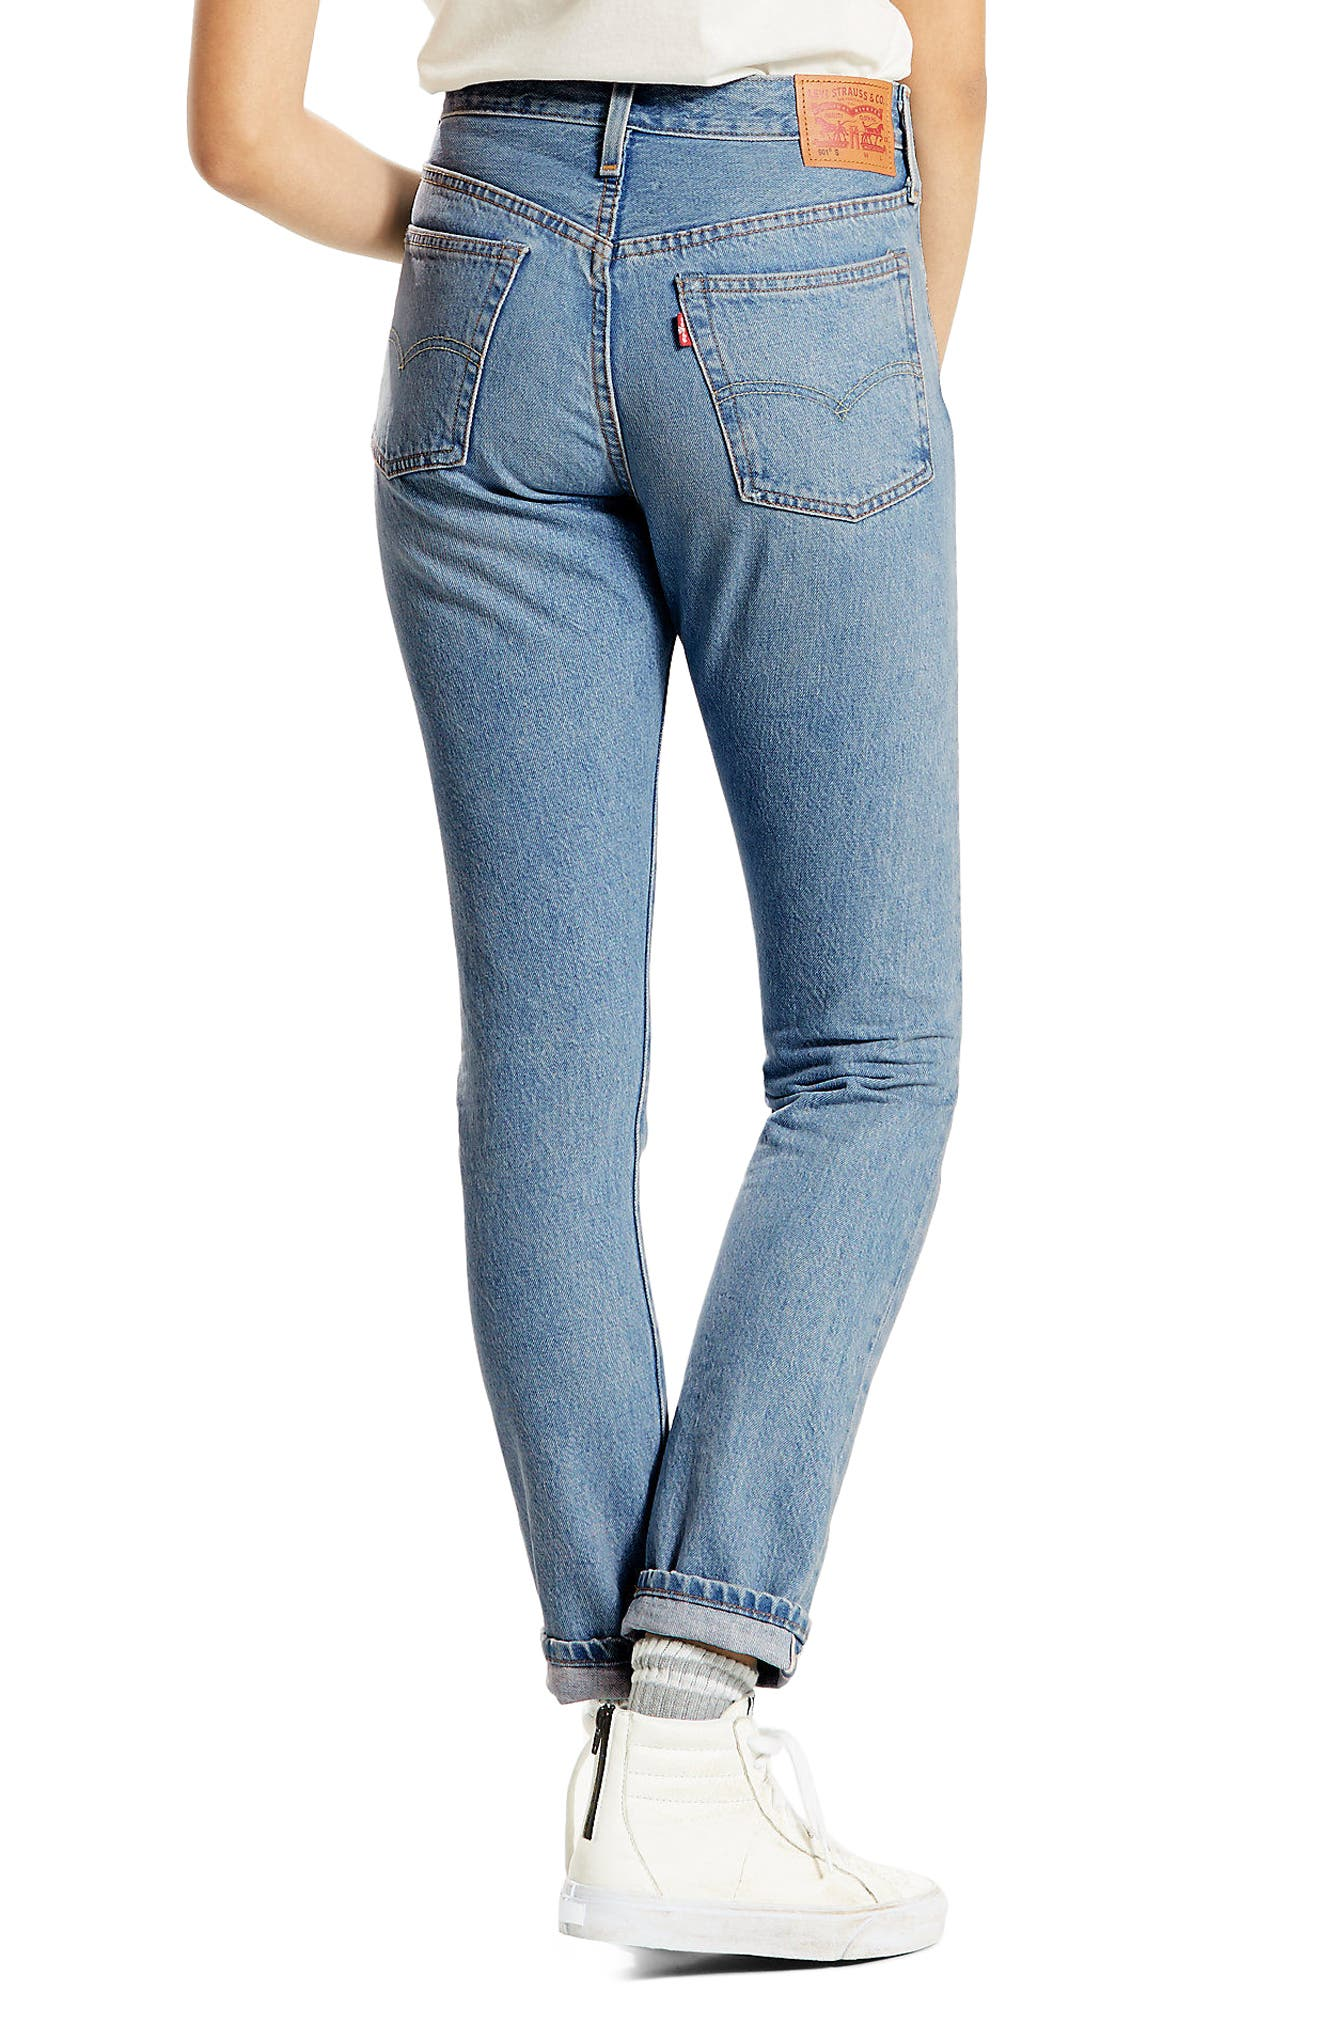 501 High Waist Skinny Jeans,                             Alternate thumbnail 2, color,                             420